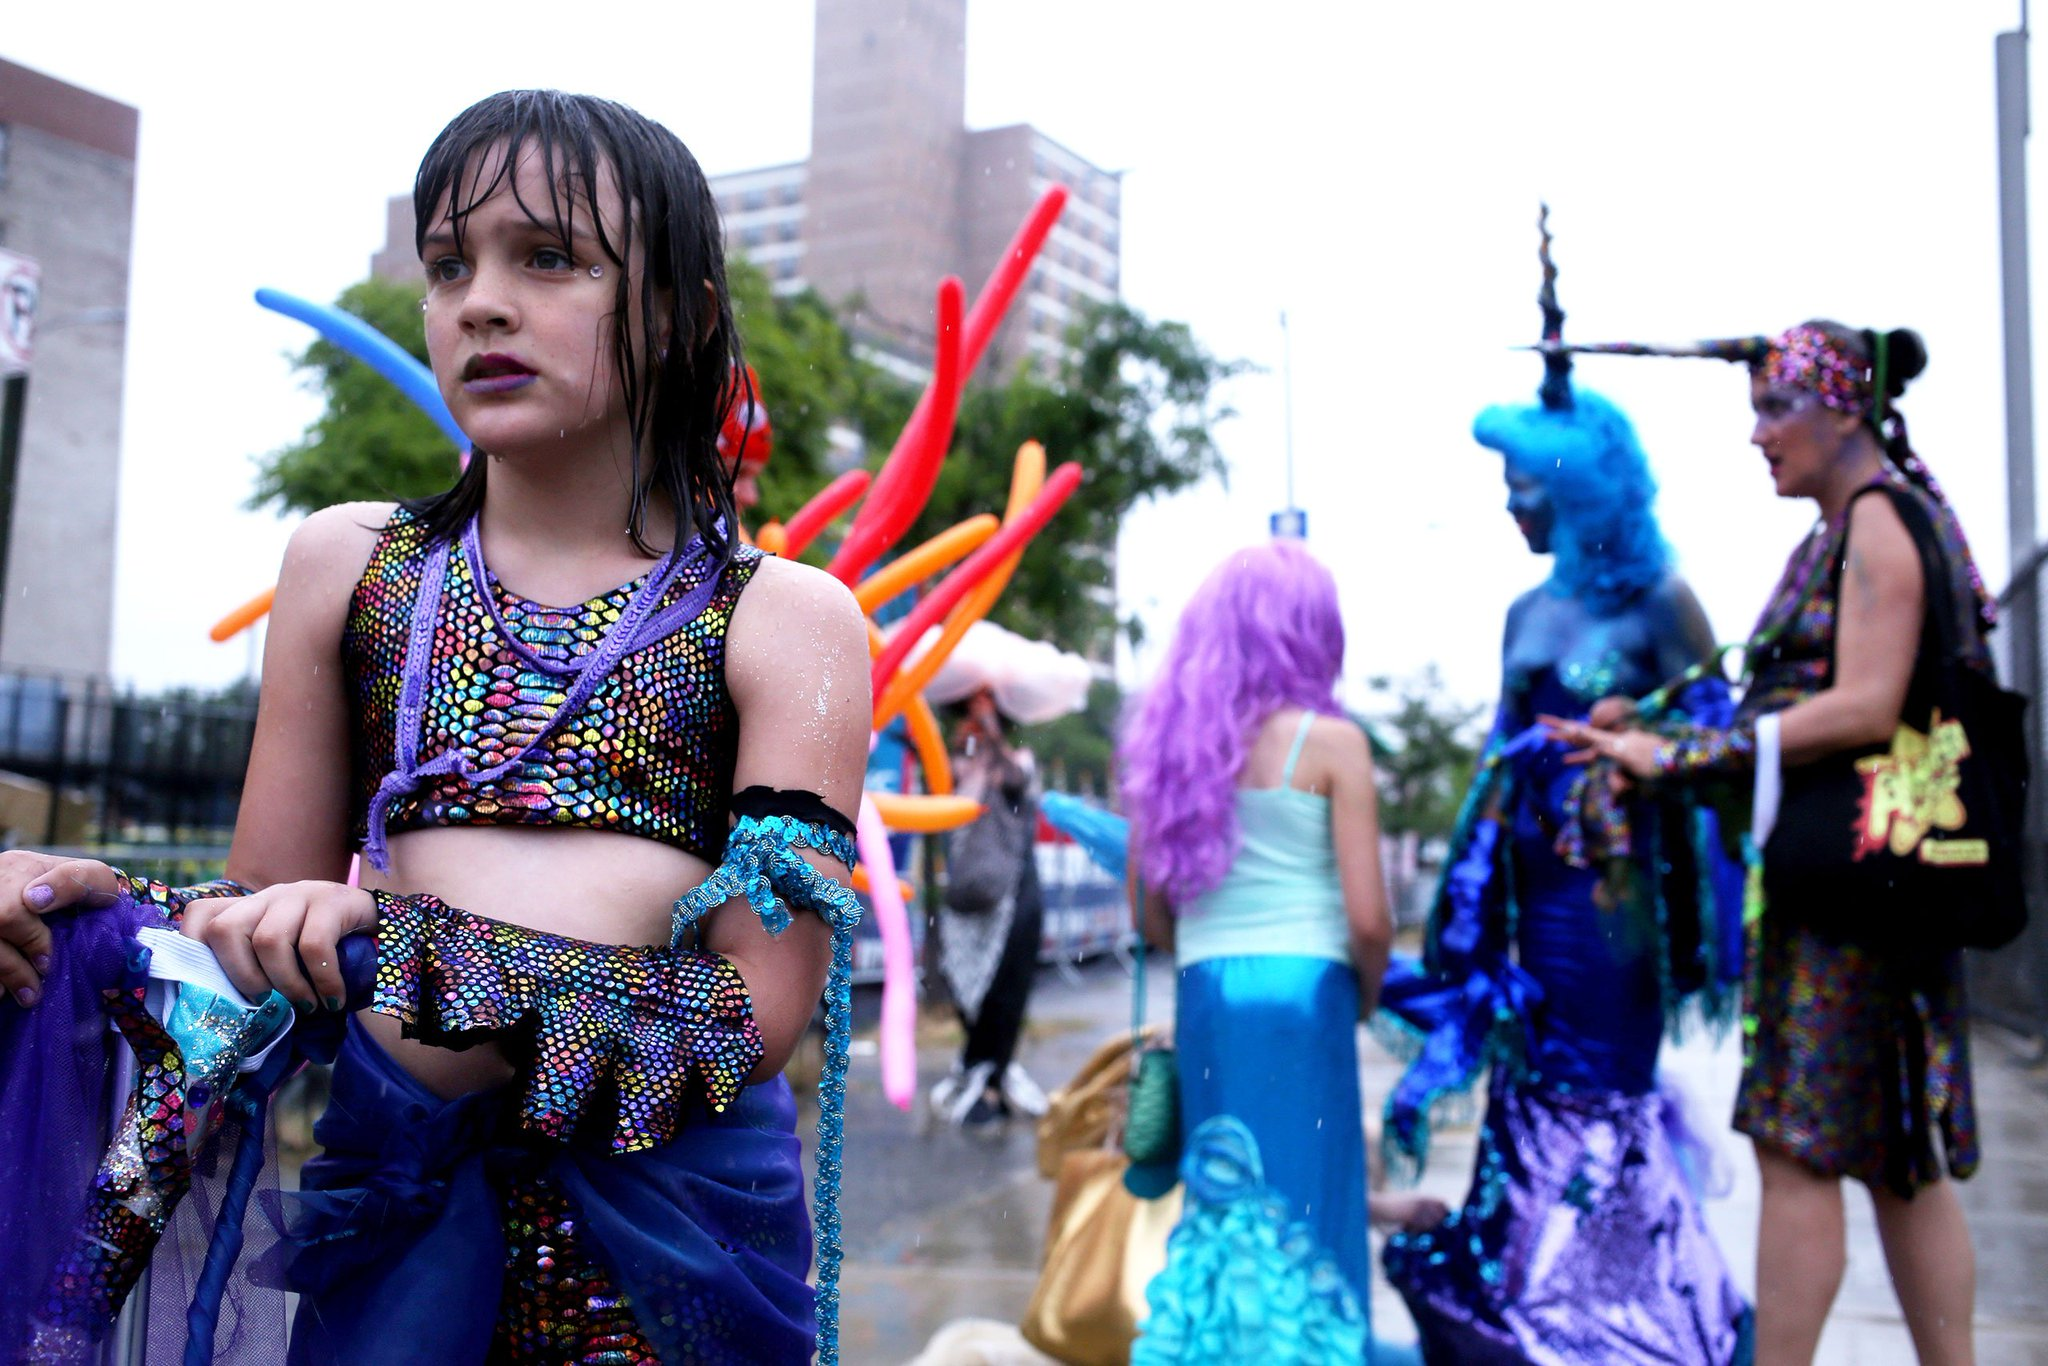 God bless the soggy mermaids of Coney Island's #MermaidParade. https://t.co/3CdDqSts3r https://t.co/o5yoDKpLV2